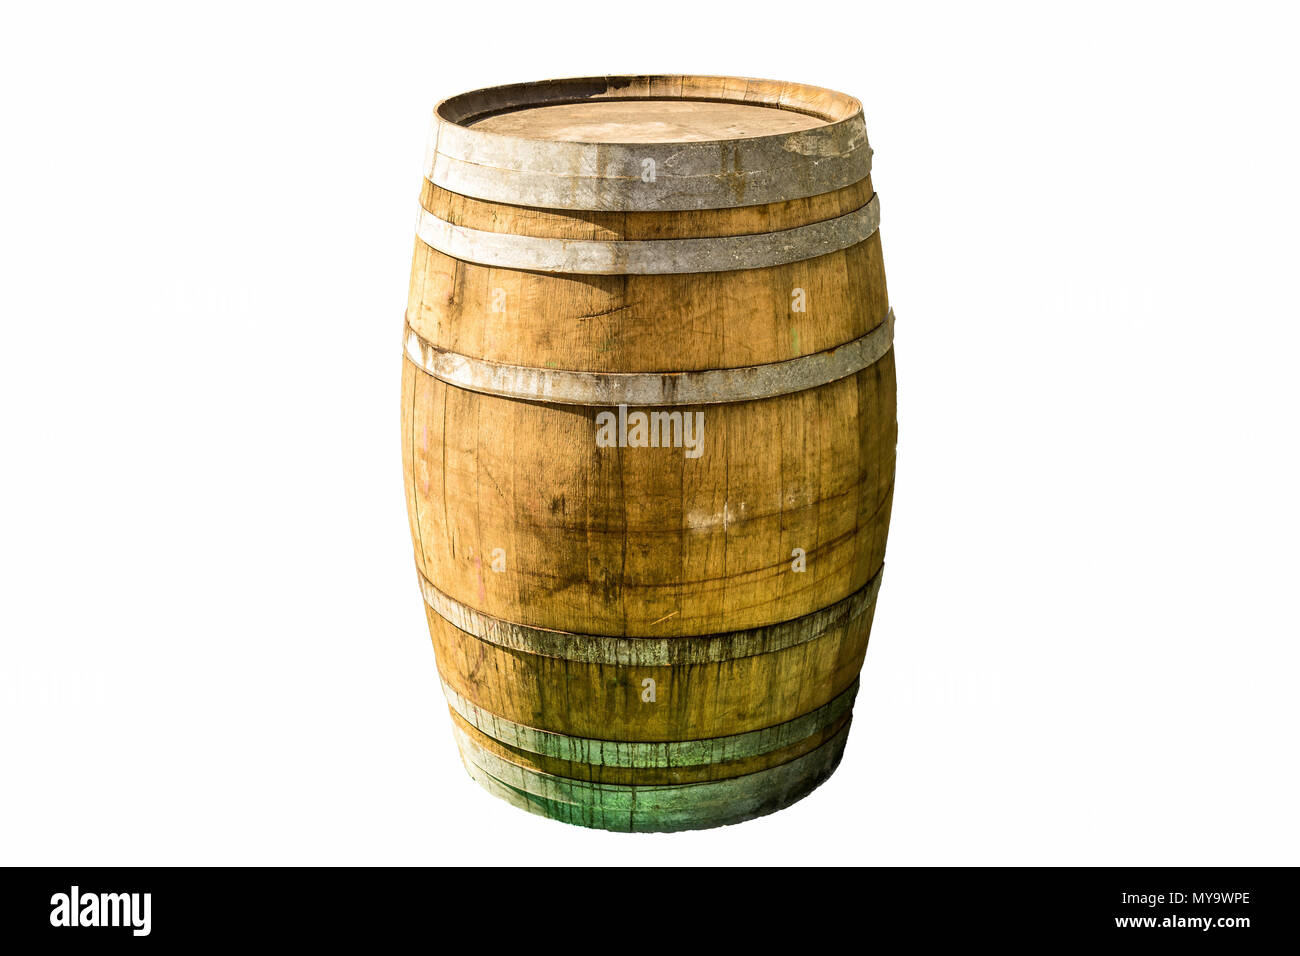 Exemplary old wooden barrel with iron rings and fixtures in front of a white clear background, isolated - Stock Image